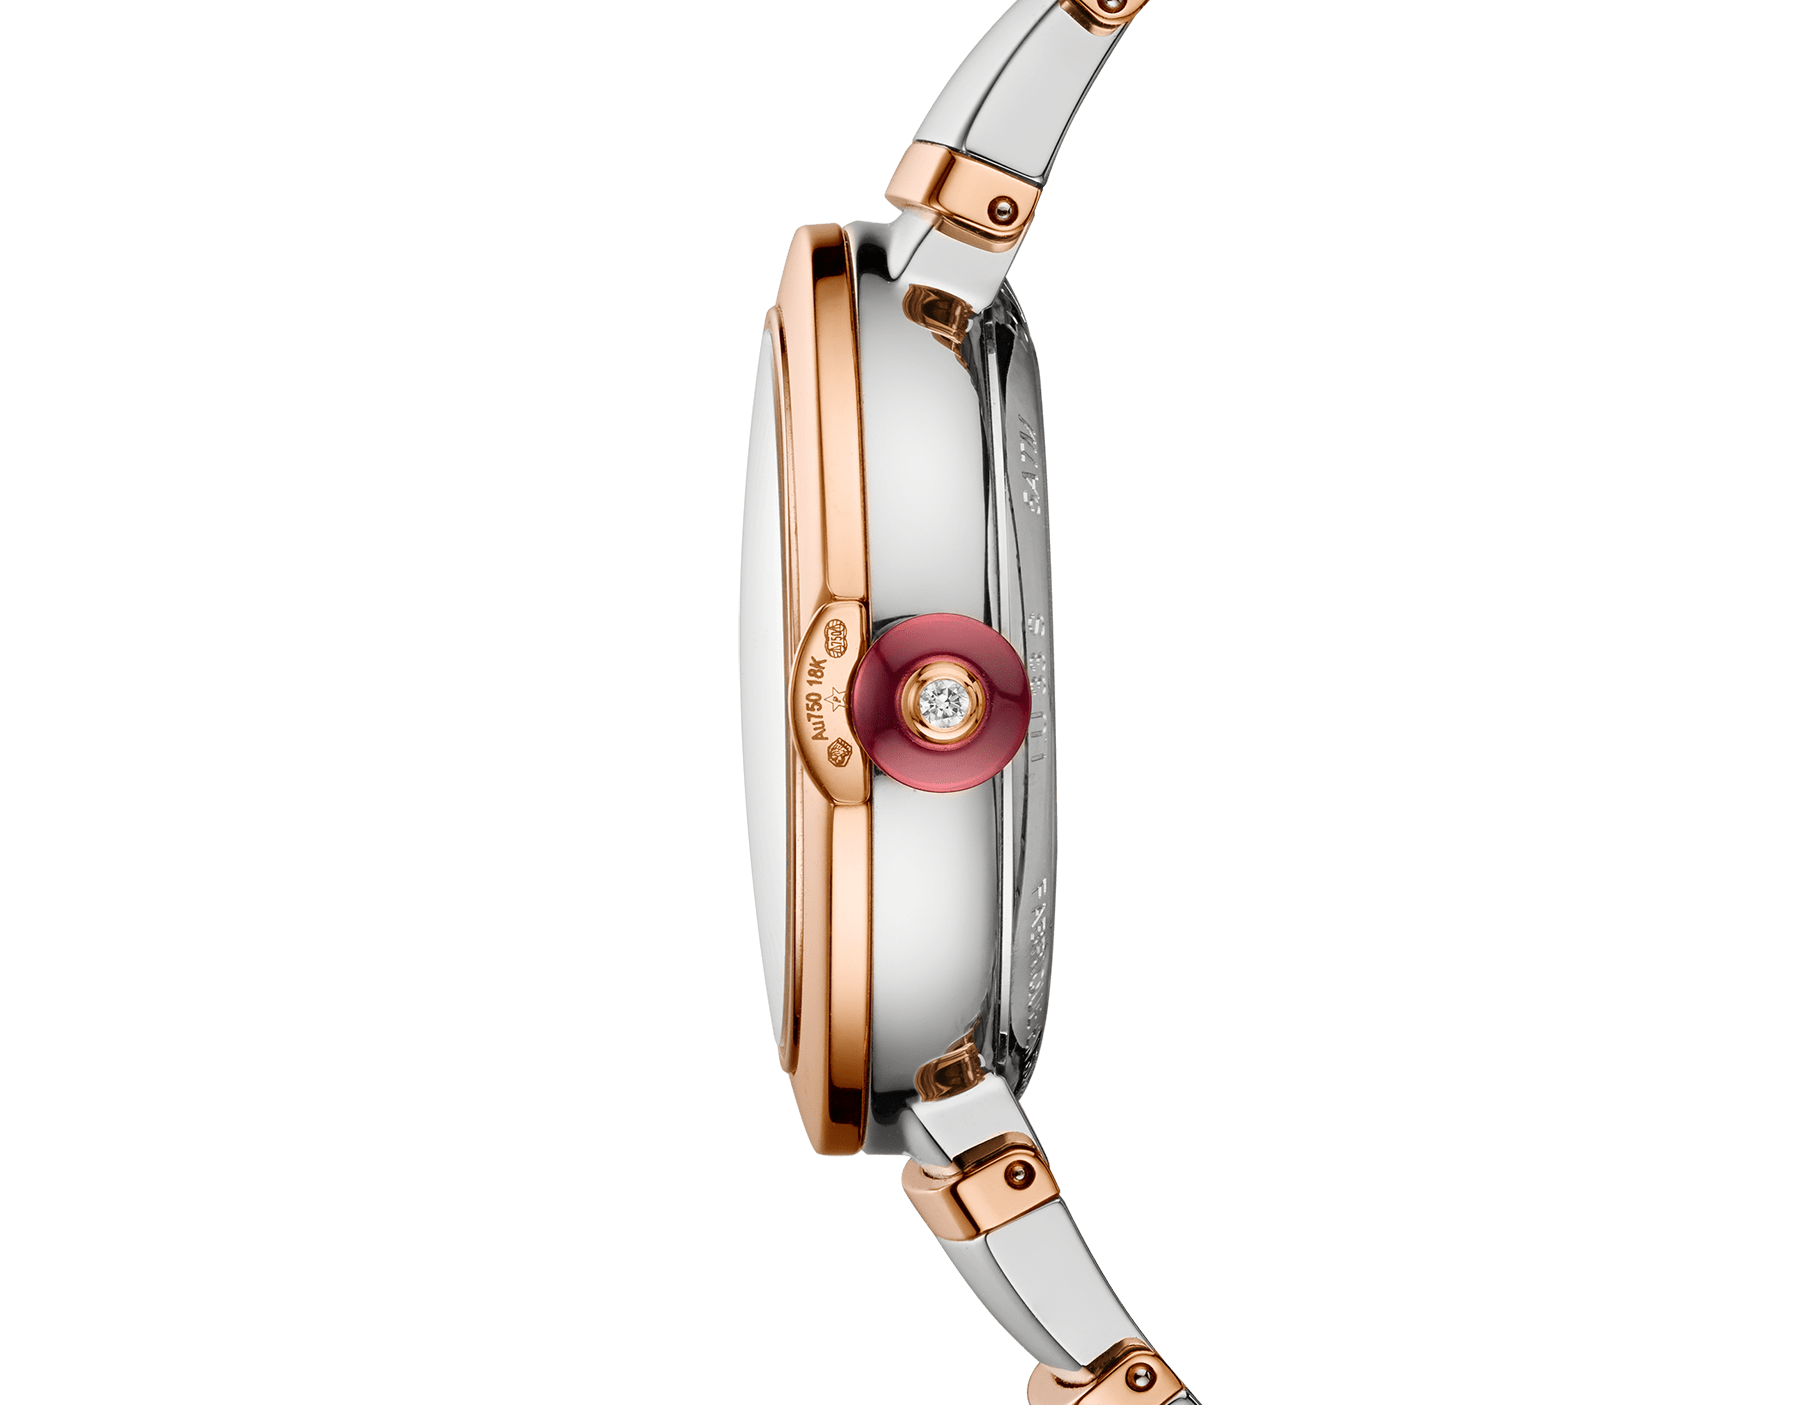 LVCEA watch with stainless steel case, 18 kt rose gold bezel, white mother-of-pearl dial, diamond indexes, stainless steel and 18 kt rose gold bracelet. 102198 image 2